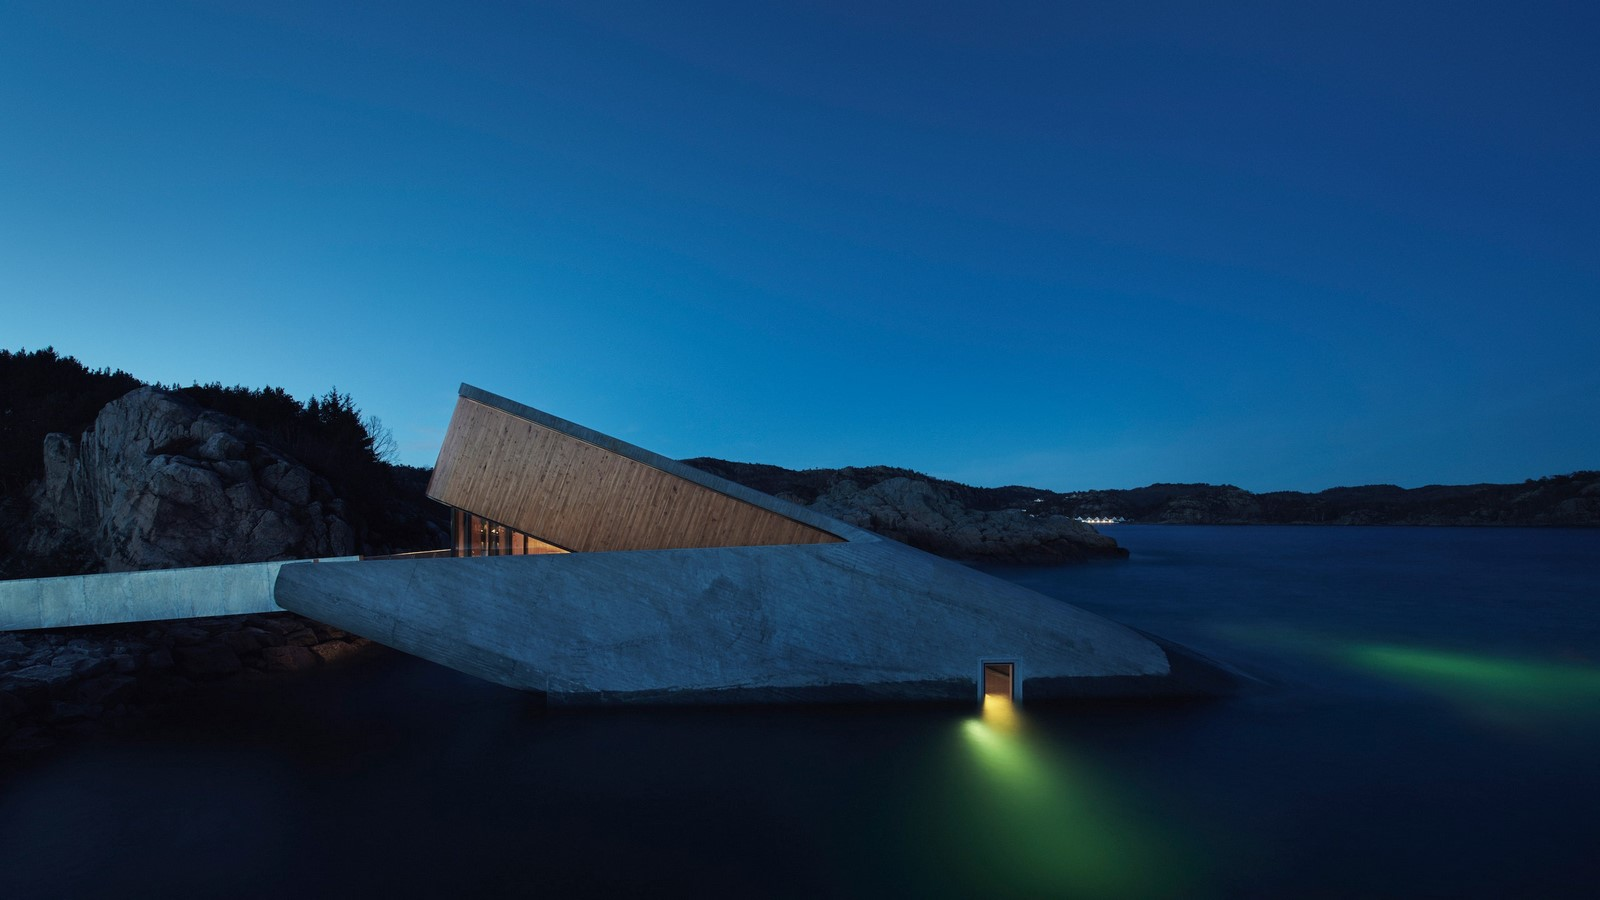 History and future of underwater architecture - Sheet5